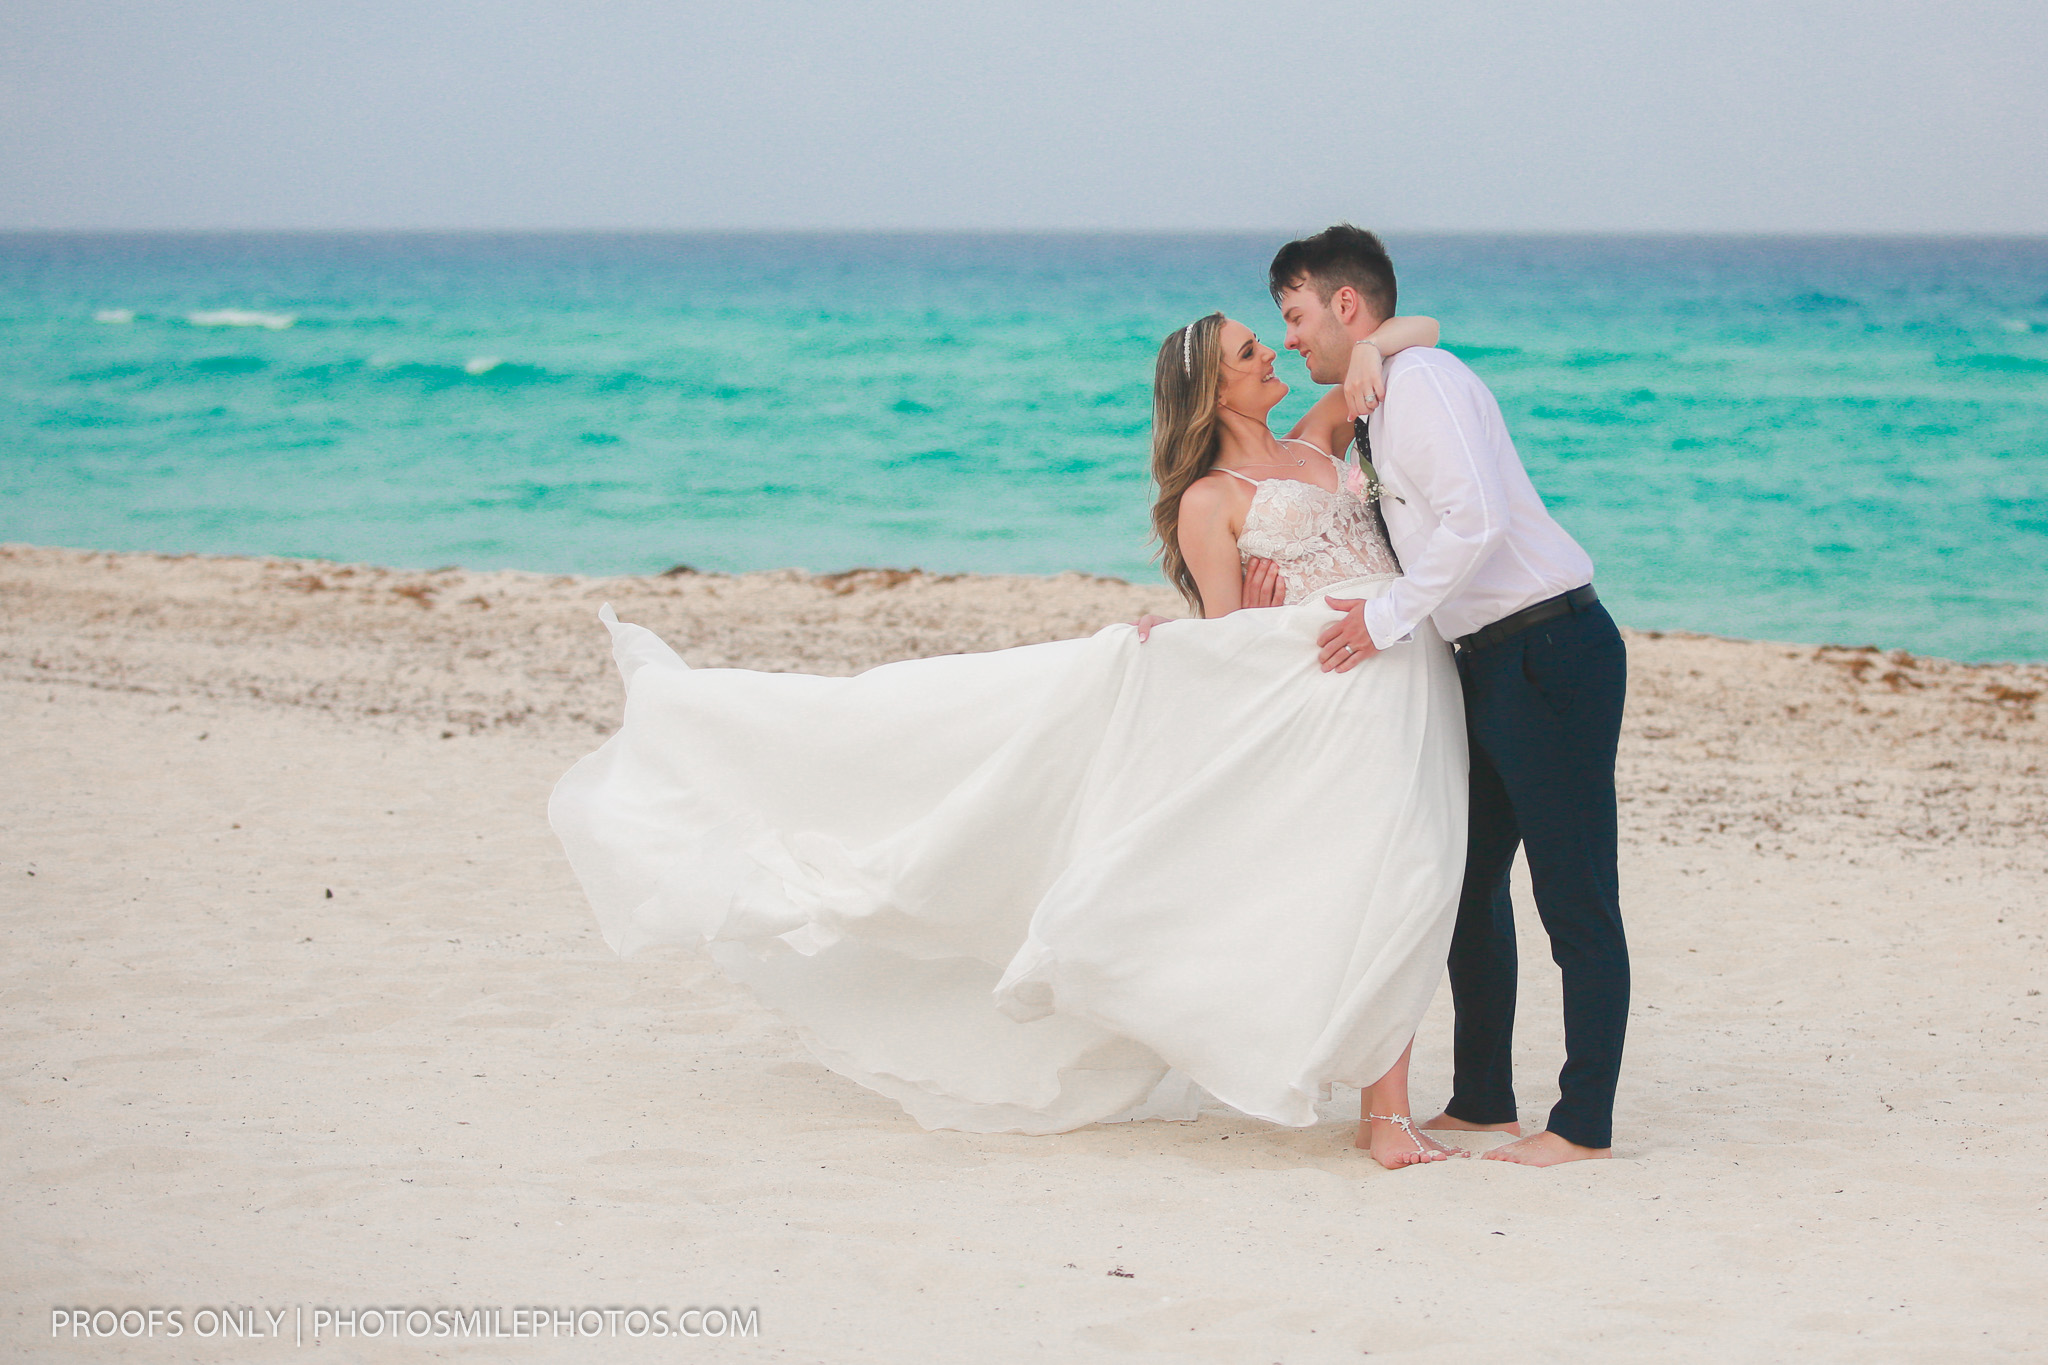 Grand Oasis Cancun Weddings, Cancun photographer, destination weddings Cancun, beach weddings Mexico, Lidia Grosso photography, bride getting ready photos